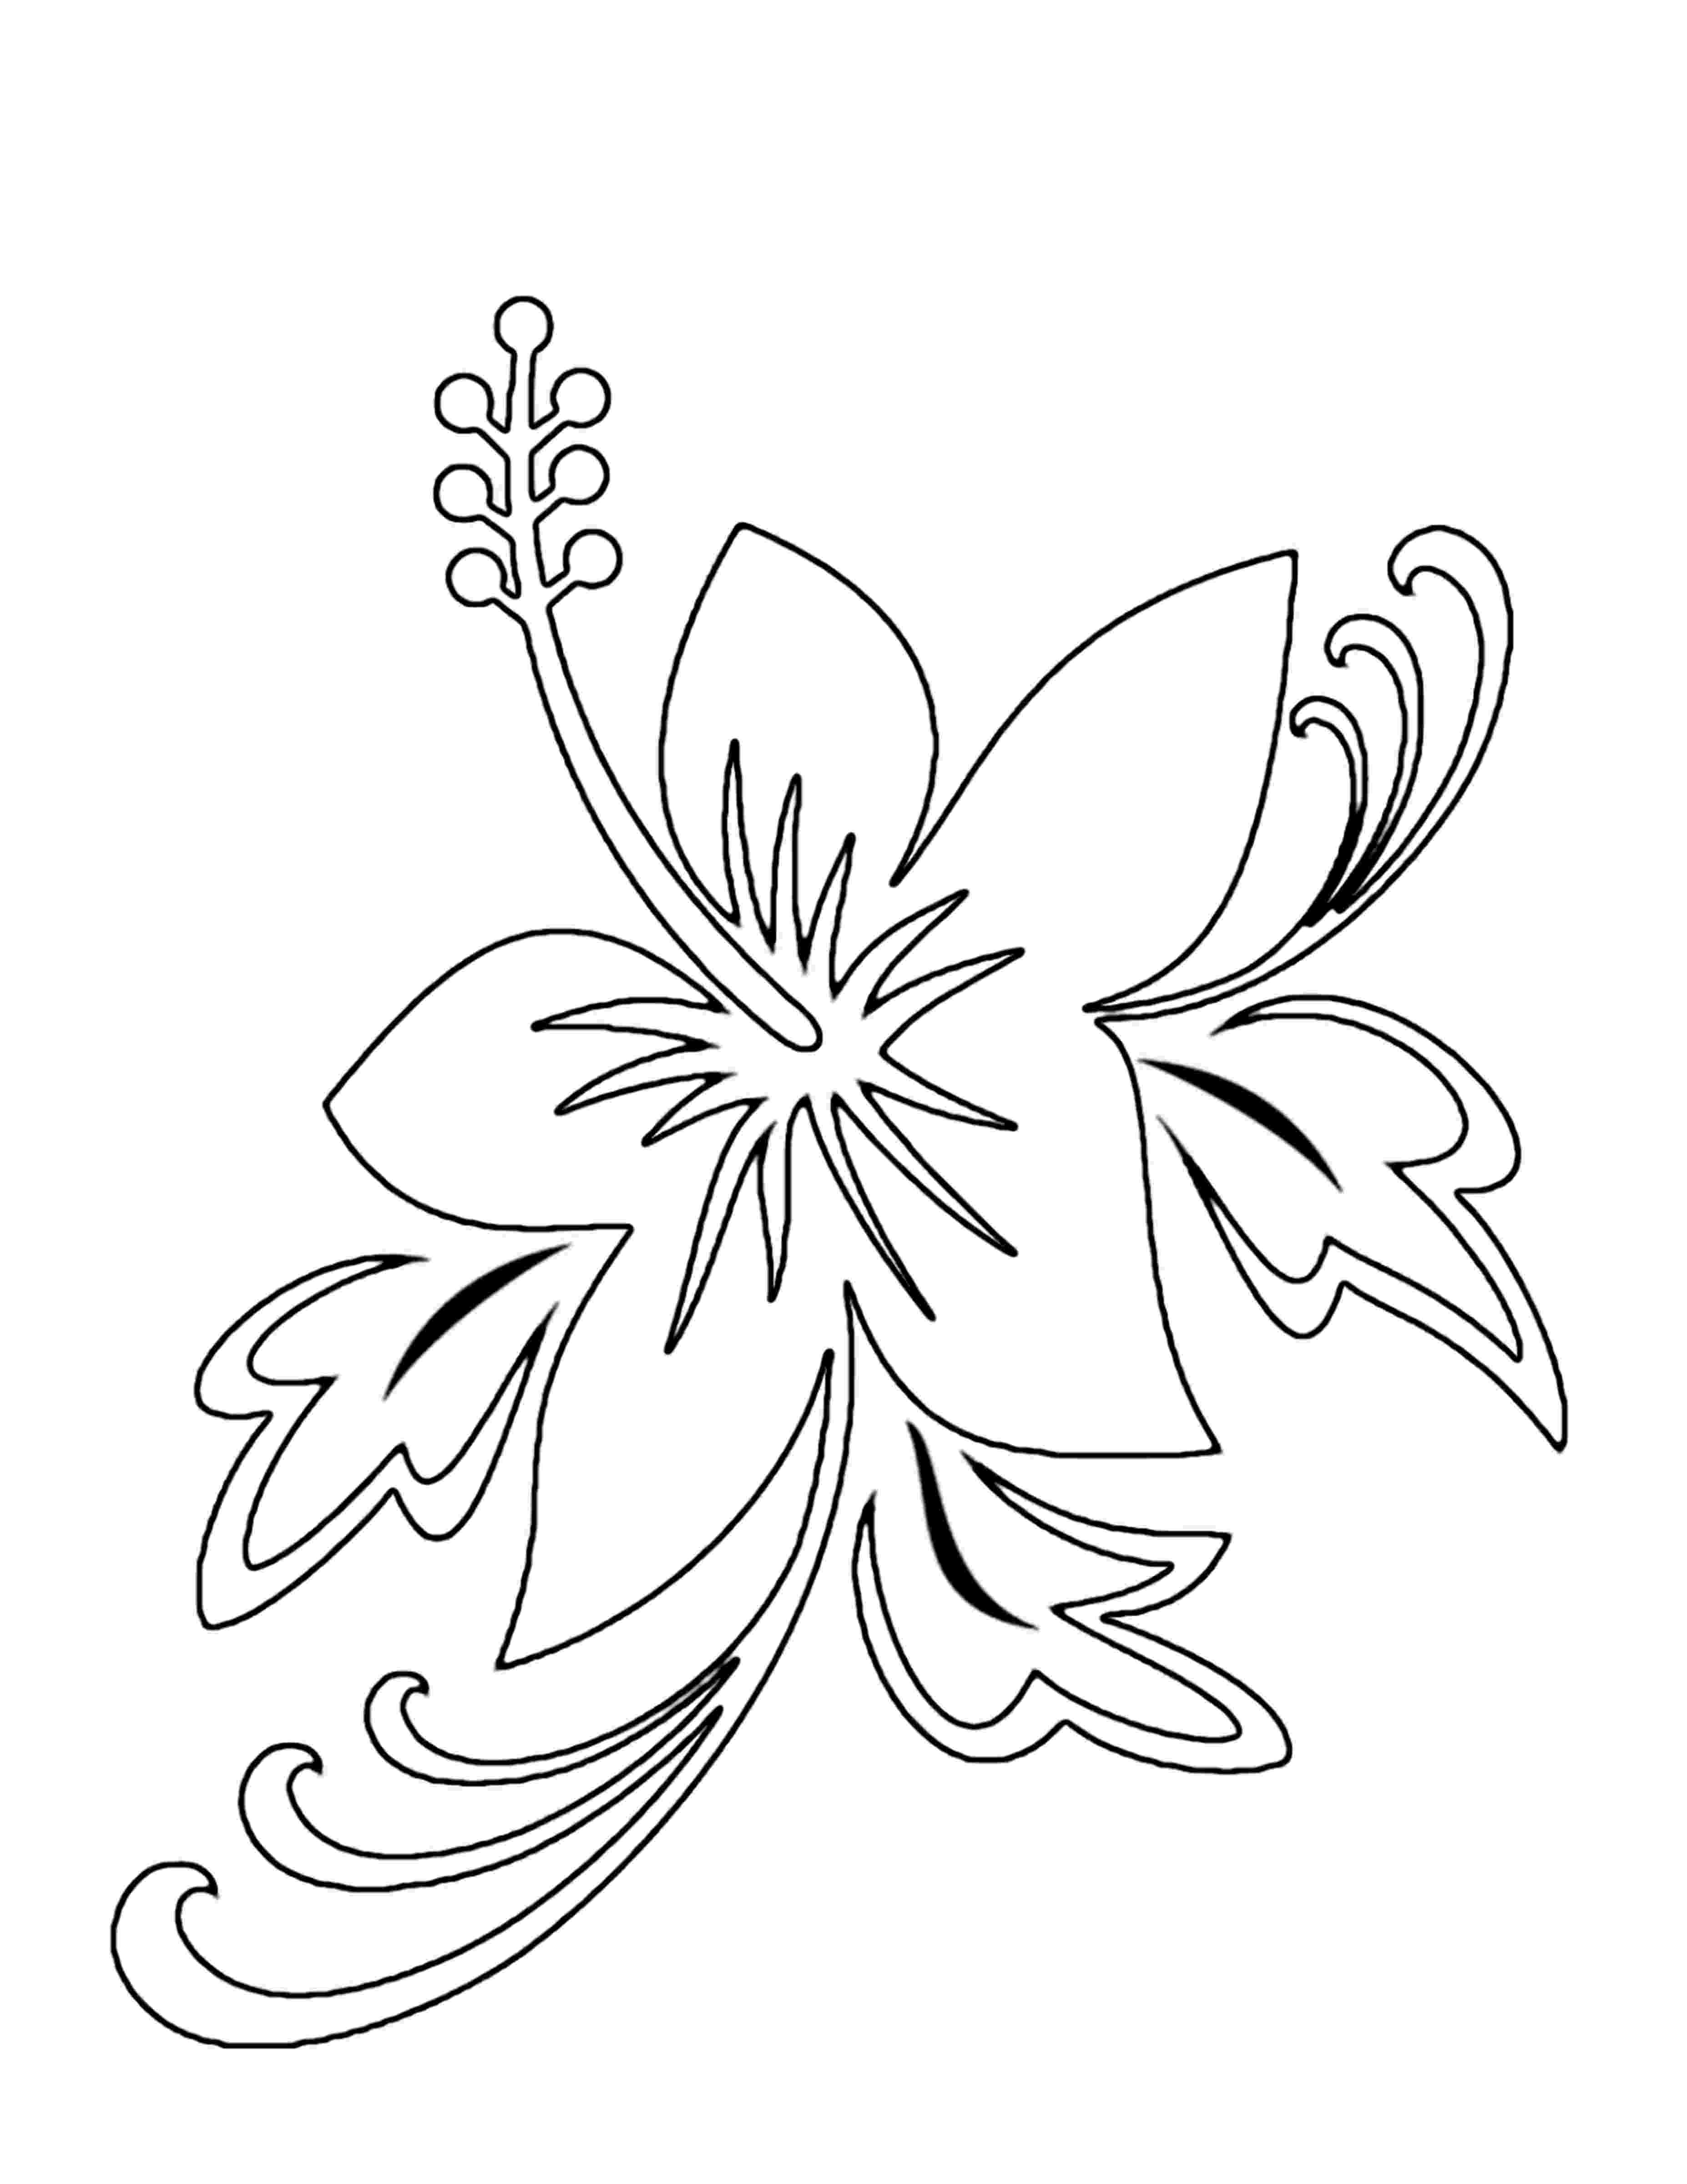 flower pictures to print and color free printable flower coloring pages for kids best flower and print to pictures color